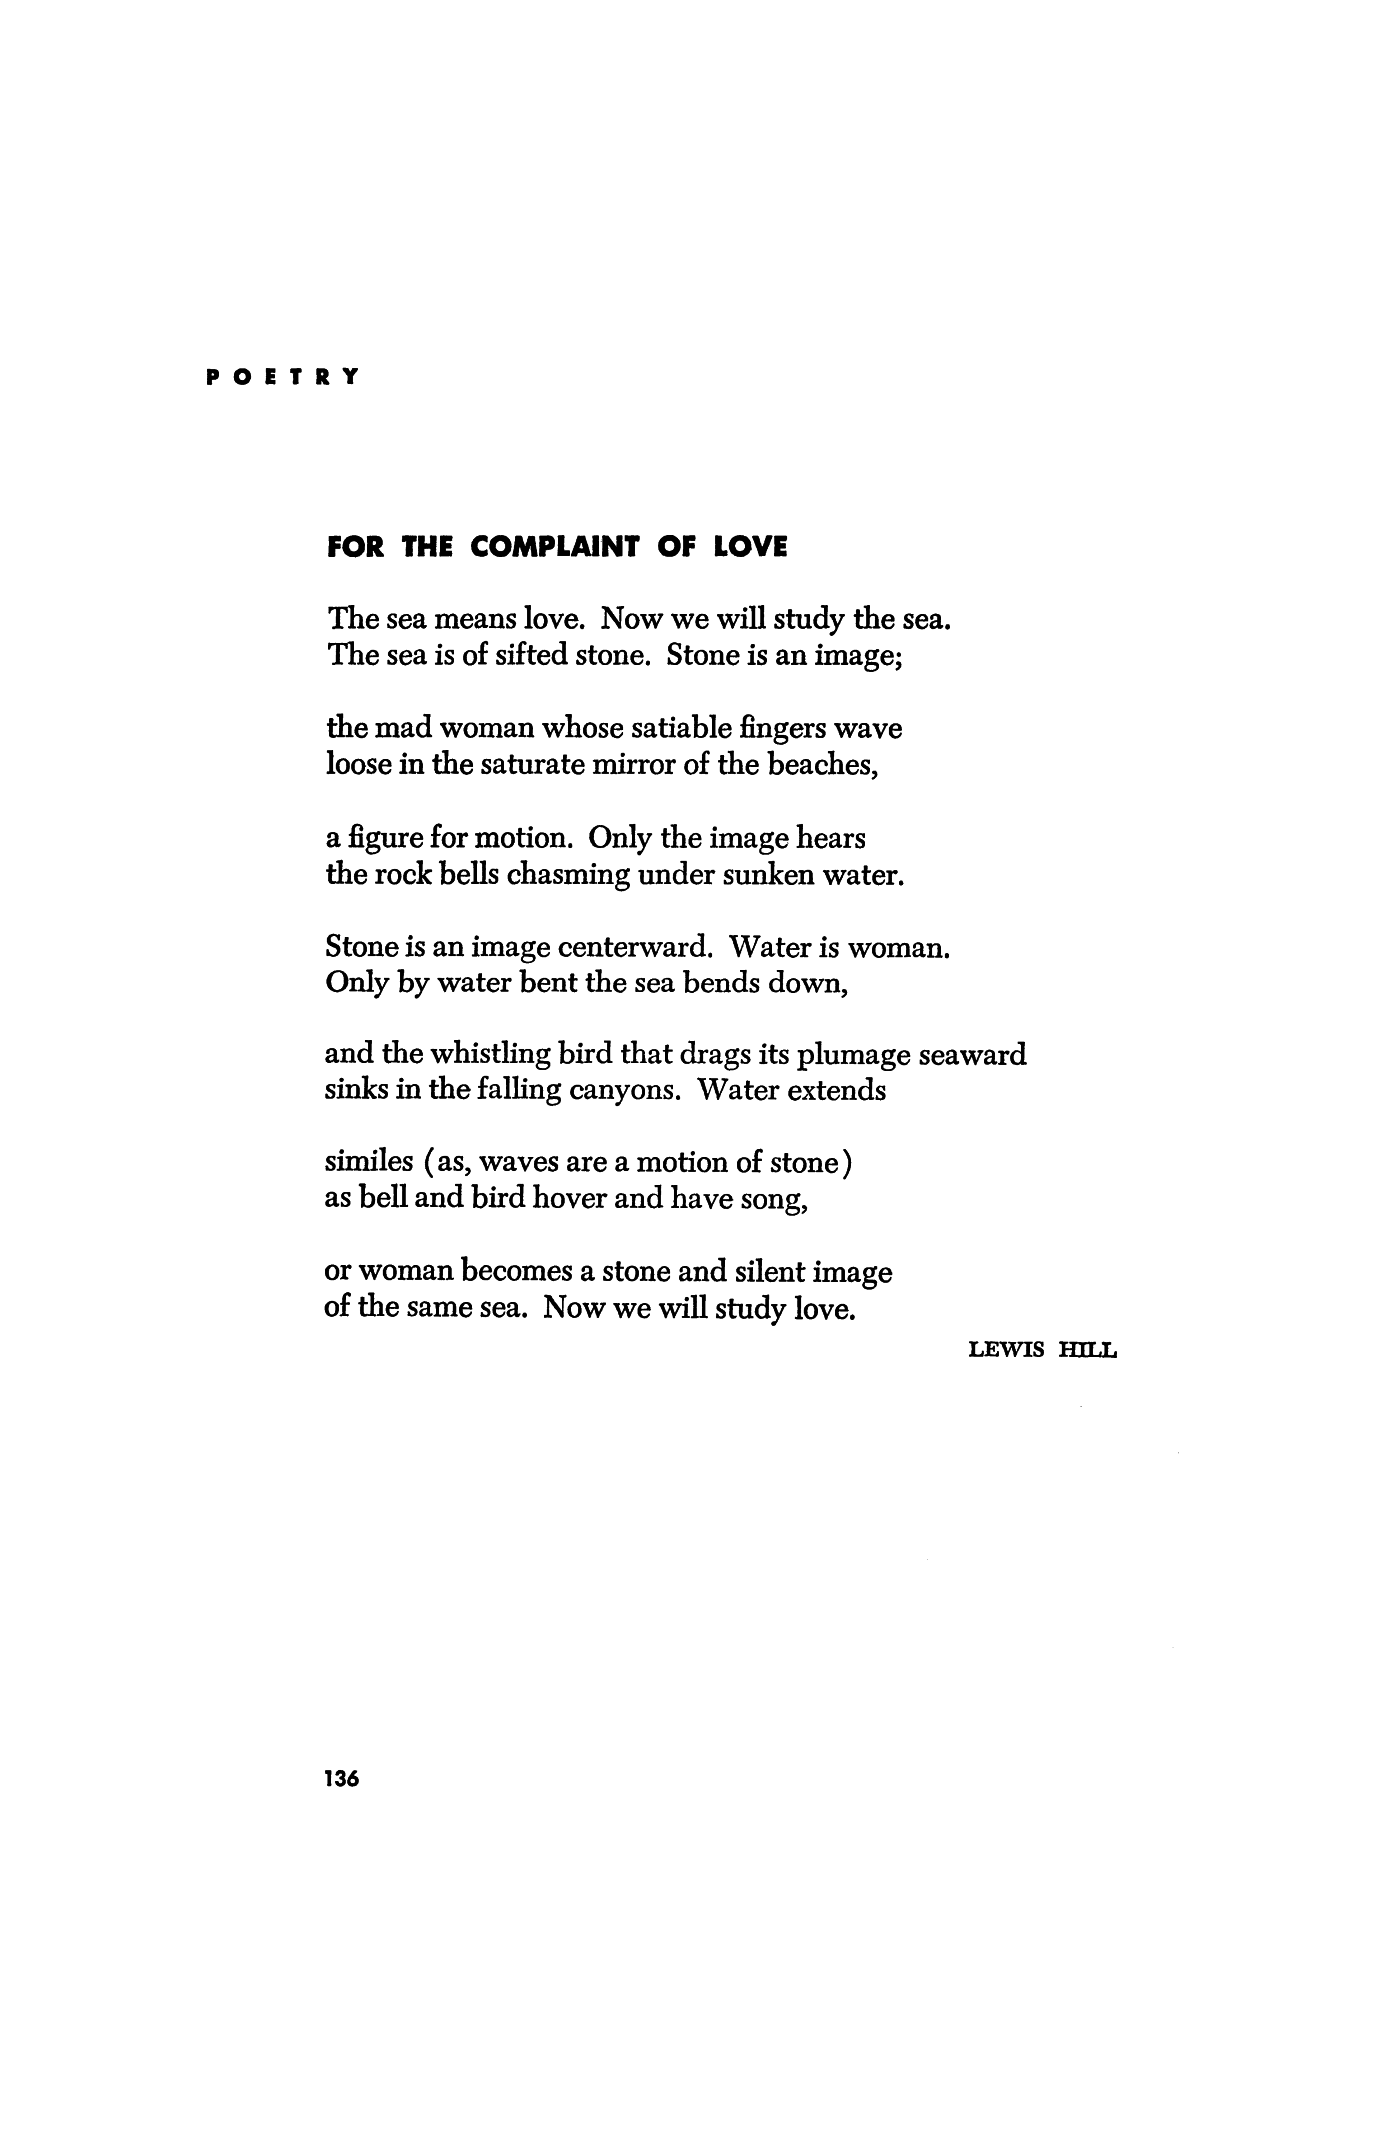 For the Complaint of Love by Lewis Hill | Poetry Magazine